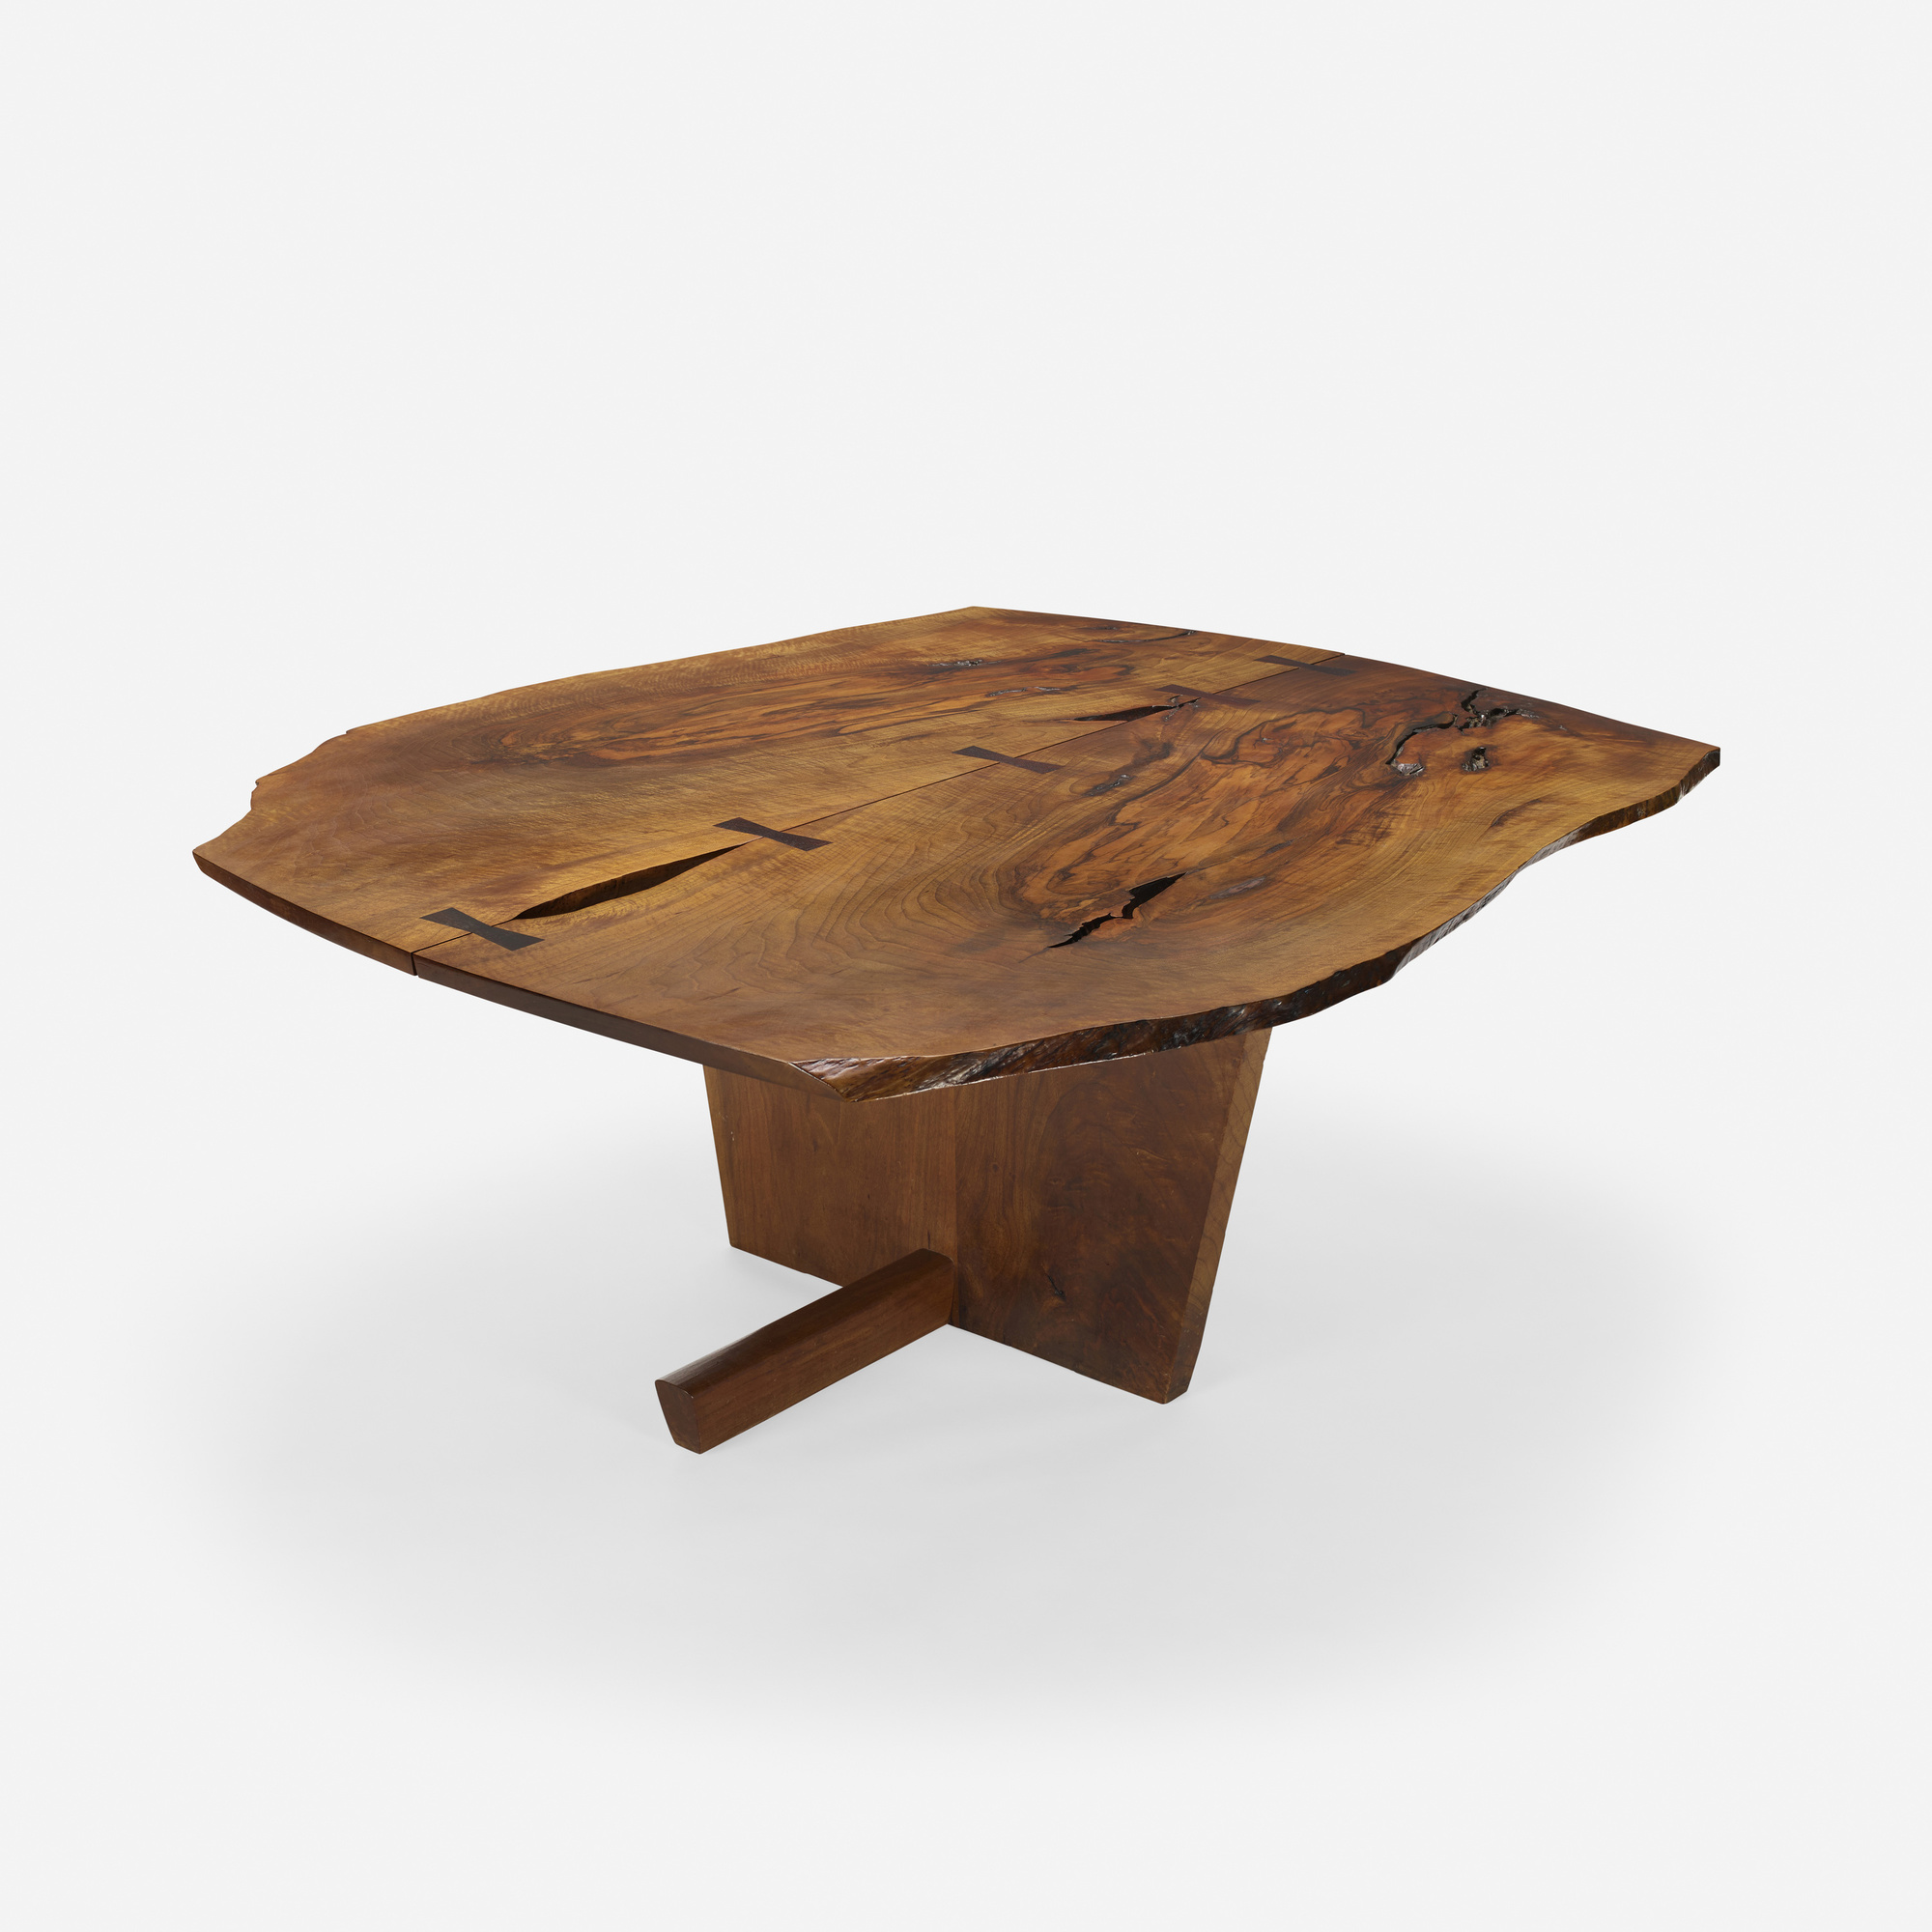 107 george nakashima minguren i dining table for Dining table design 2016